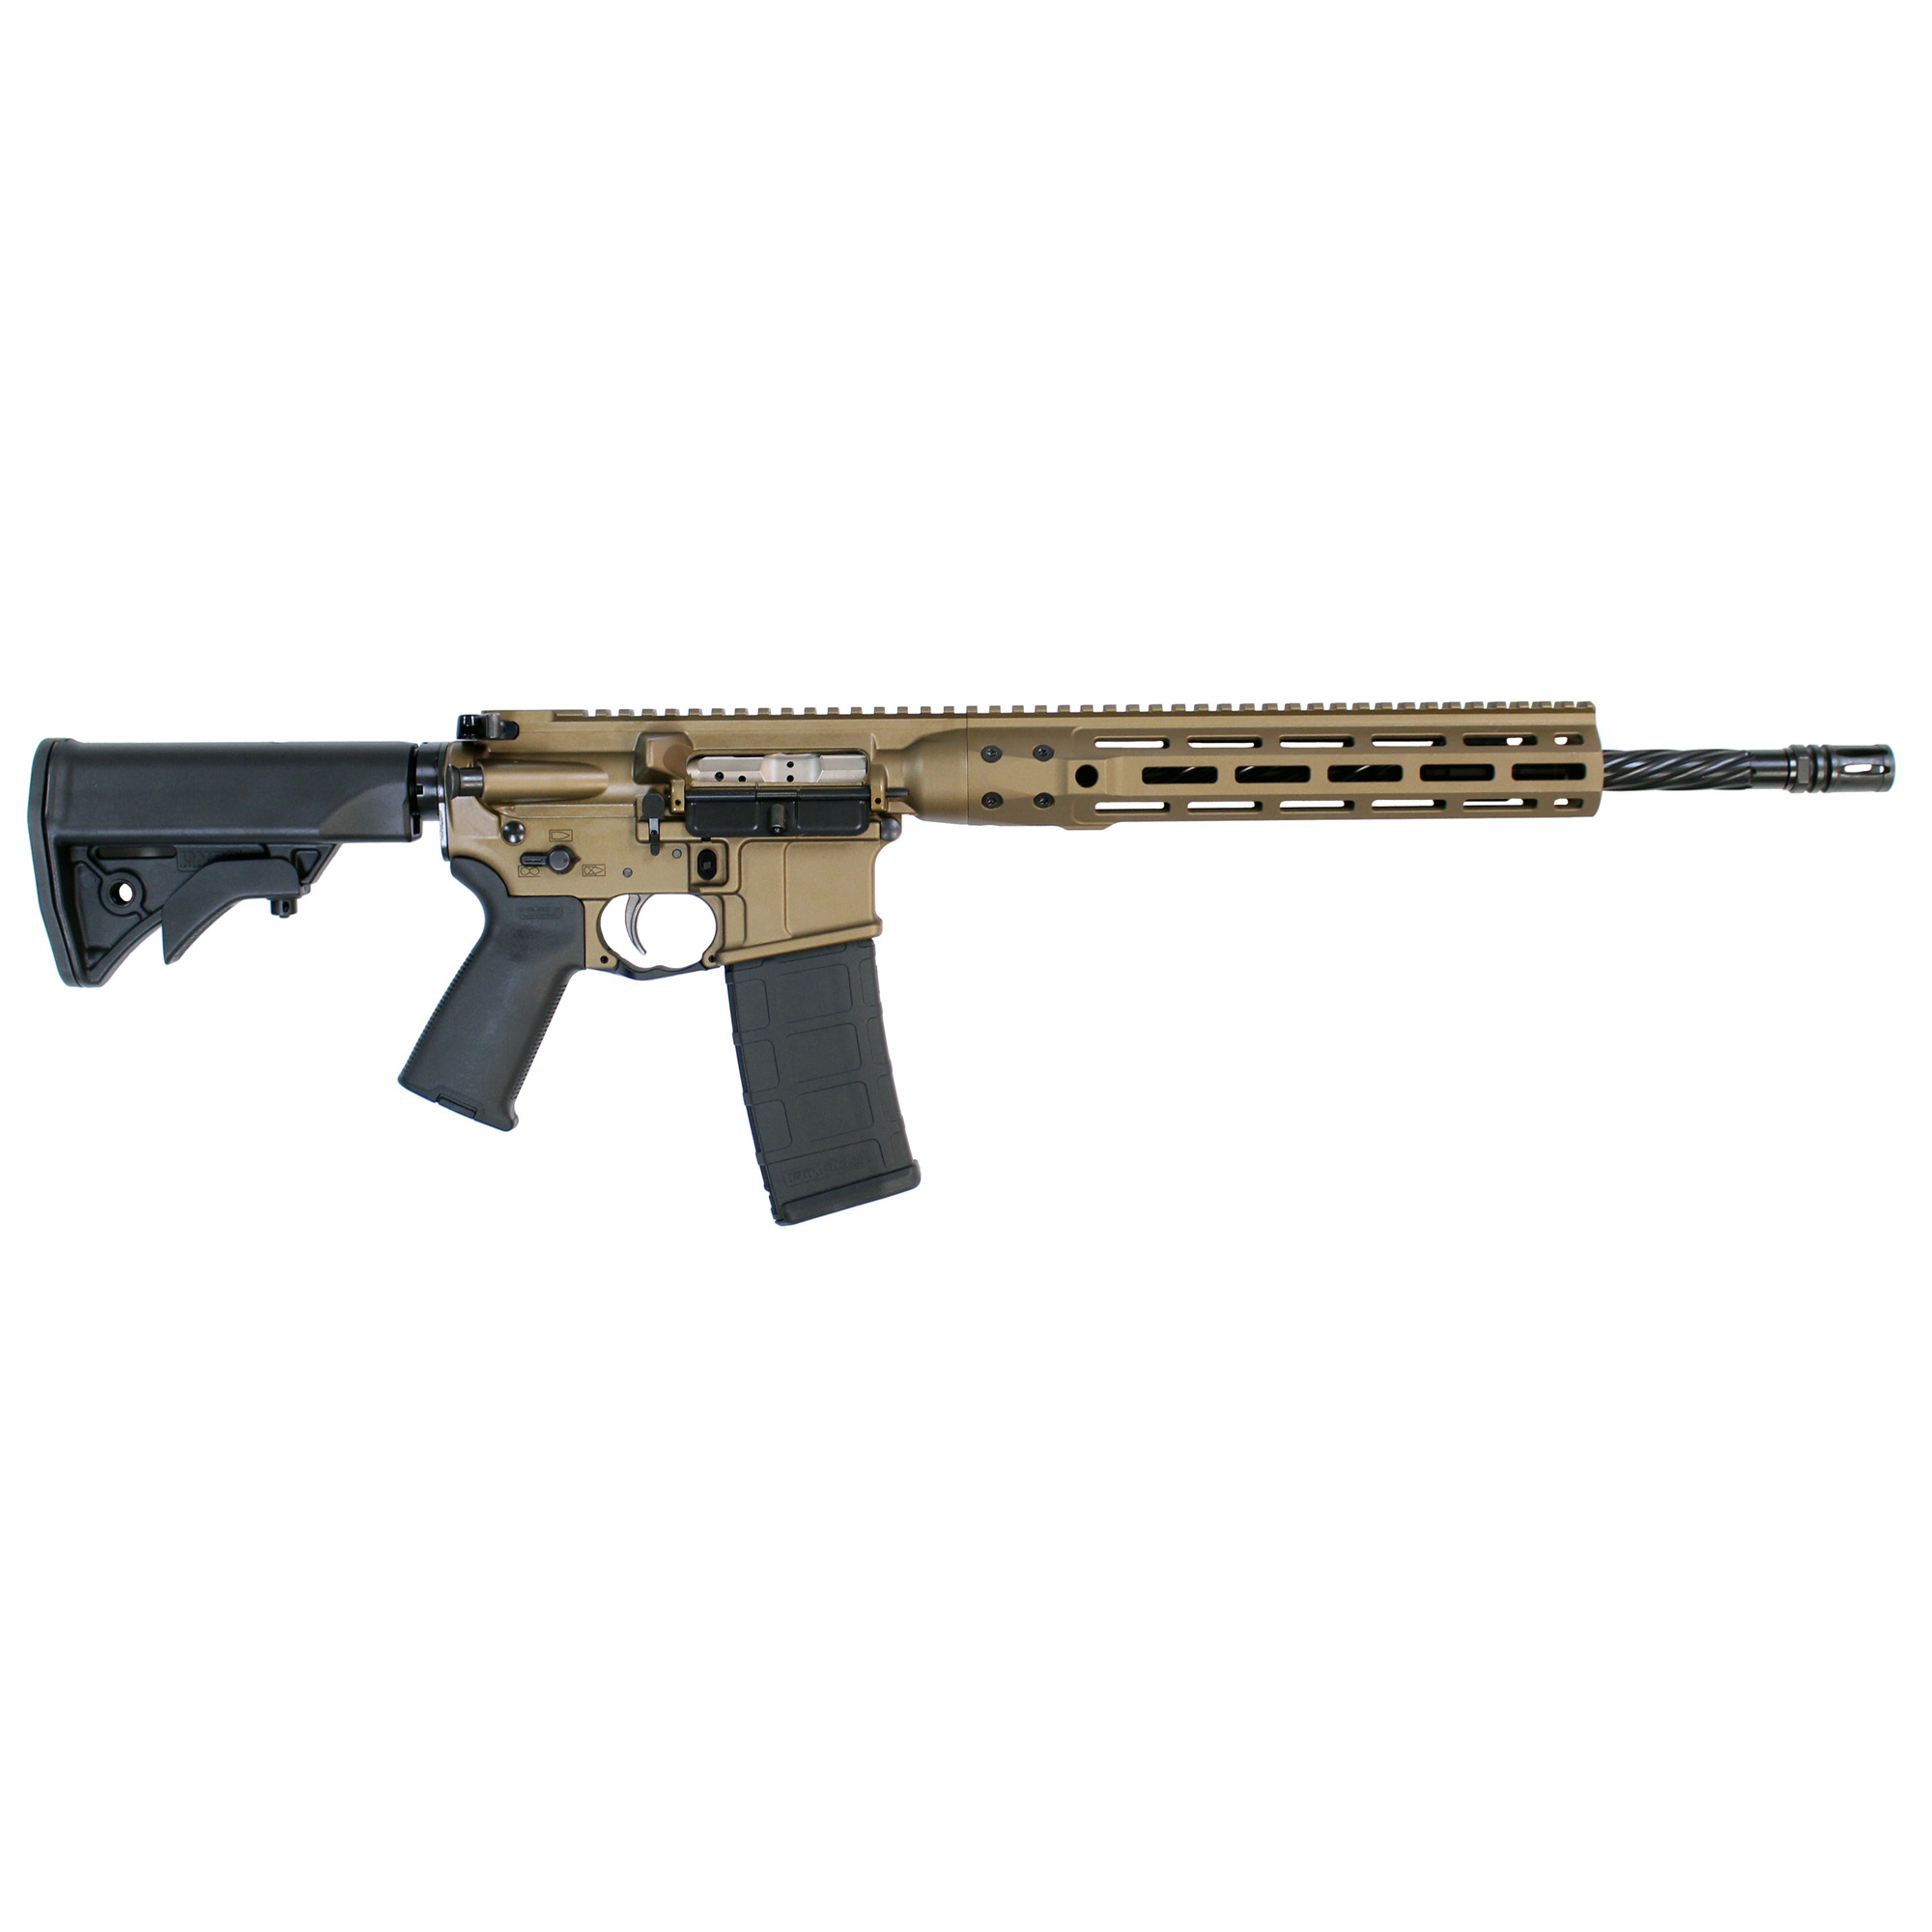 "The LWRCI(TM) Di is made with the same craftsmanship and design excellence that comes with every LWRCI(TM) firearm. Built from the ground up to be more than just another direct impingement rifle"" the LWRCI(TM) Di delivers the quality every rifle enthusiast demands with innovation that's expected from LWRCI(TM)."